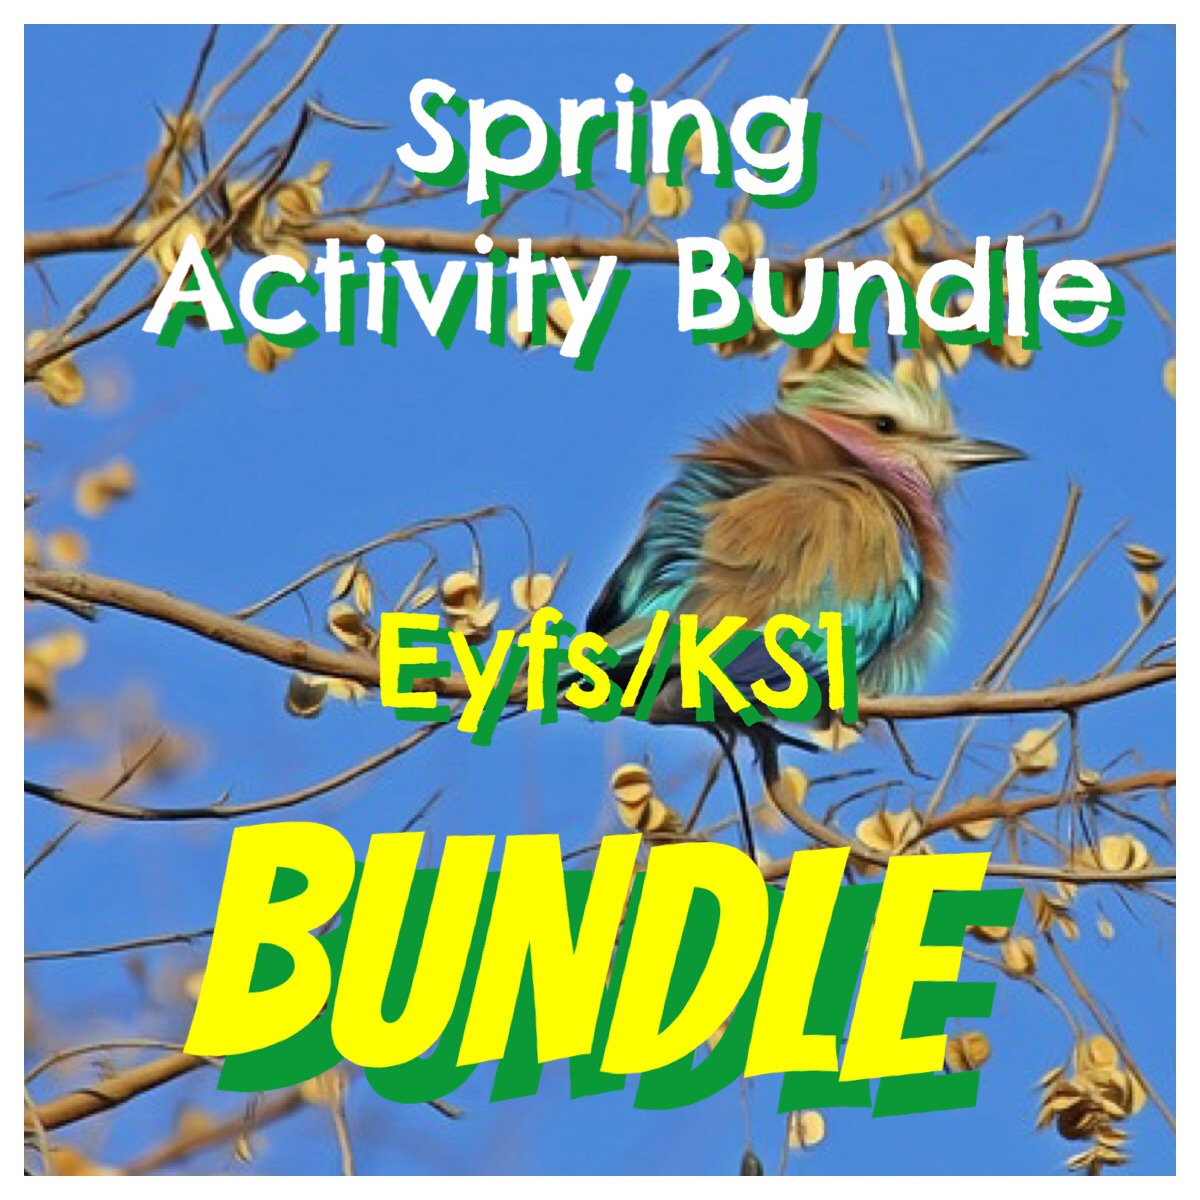 Spring Activity Bundle for EYFS/KS1